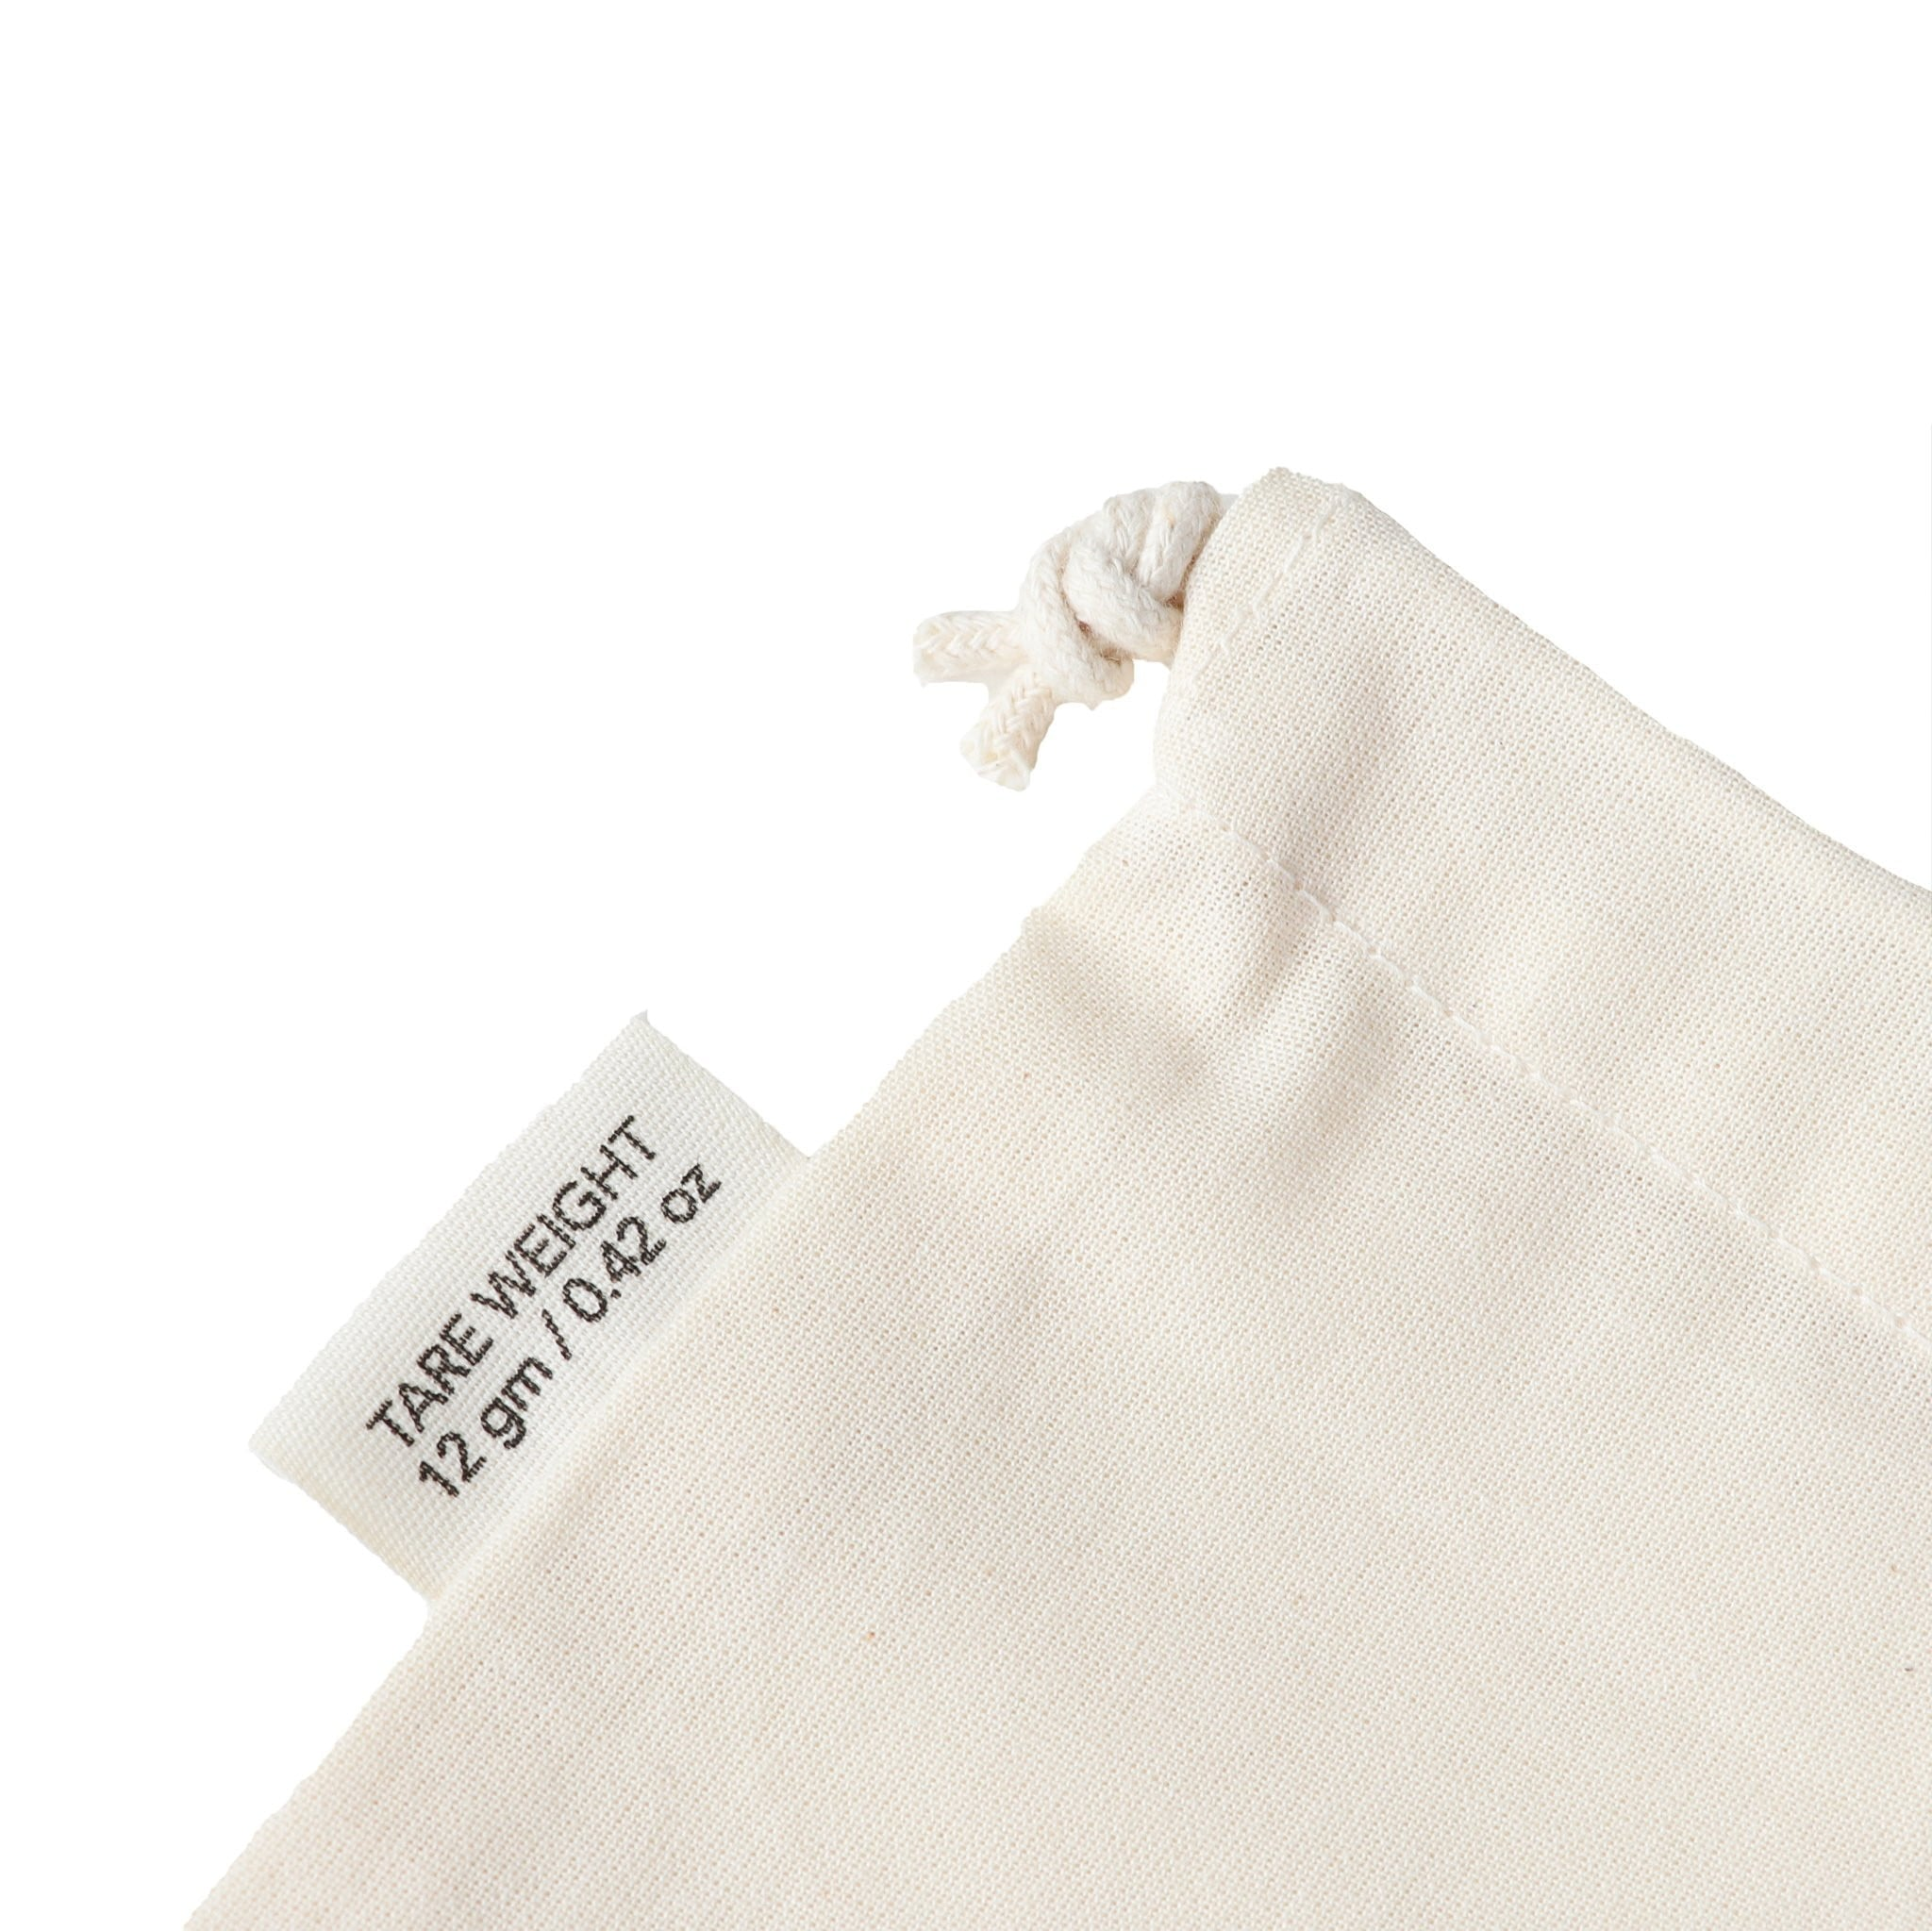 Tare weight tag on small organic cotton produce bag